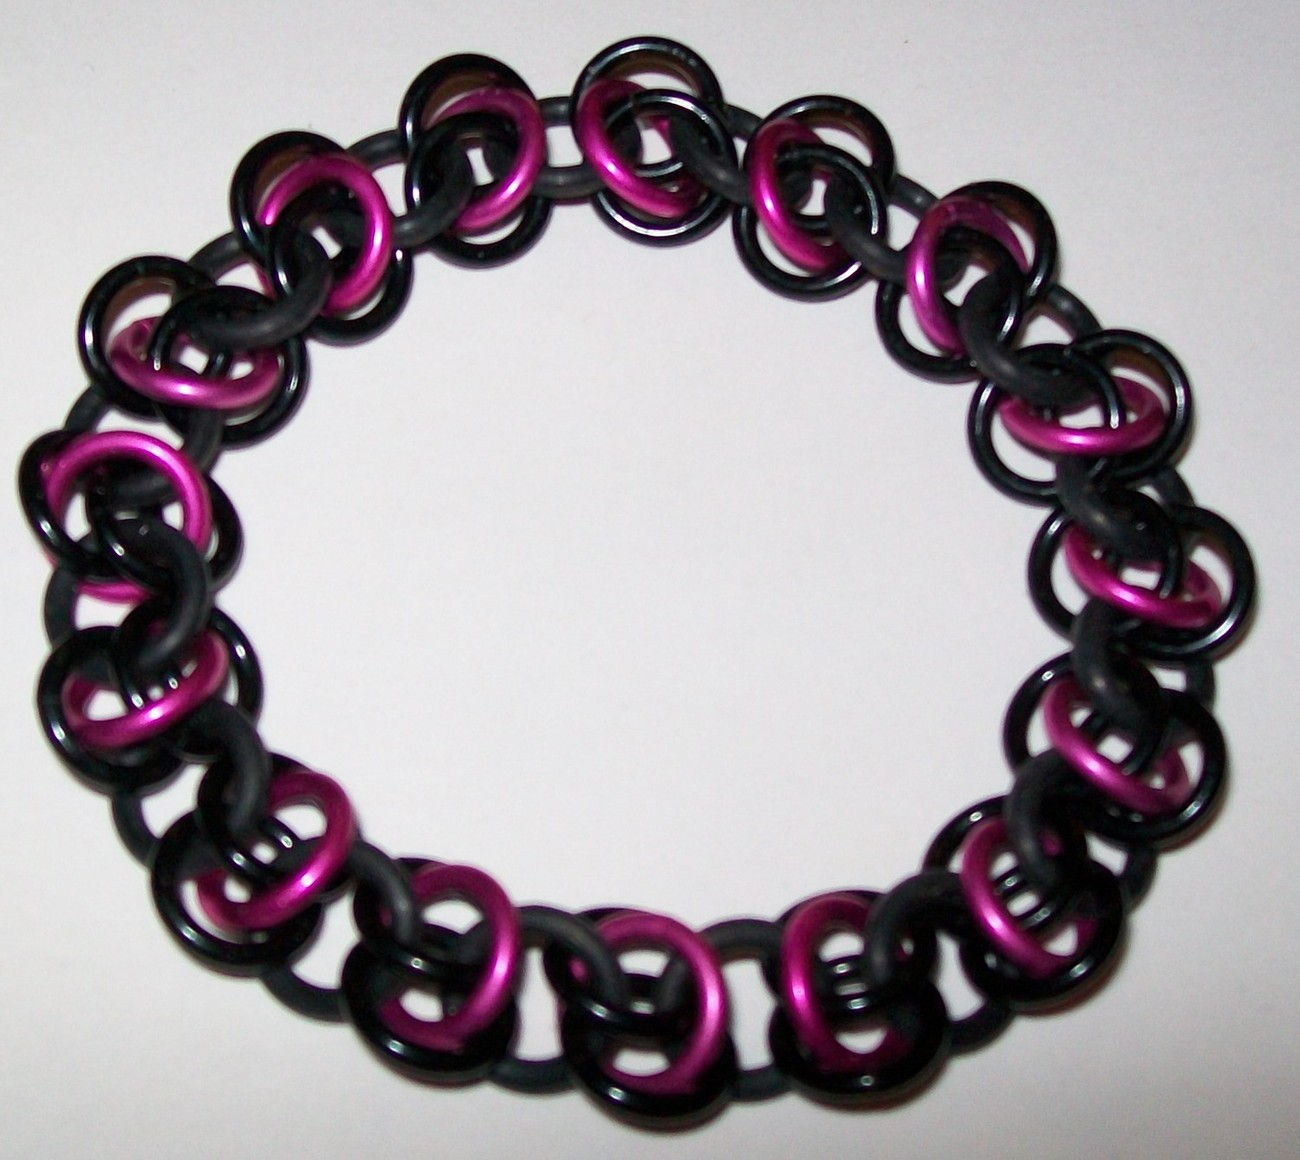 Floating Rings Strecth Chainmaille Bracelet